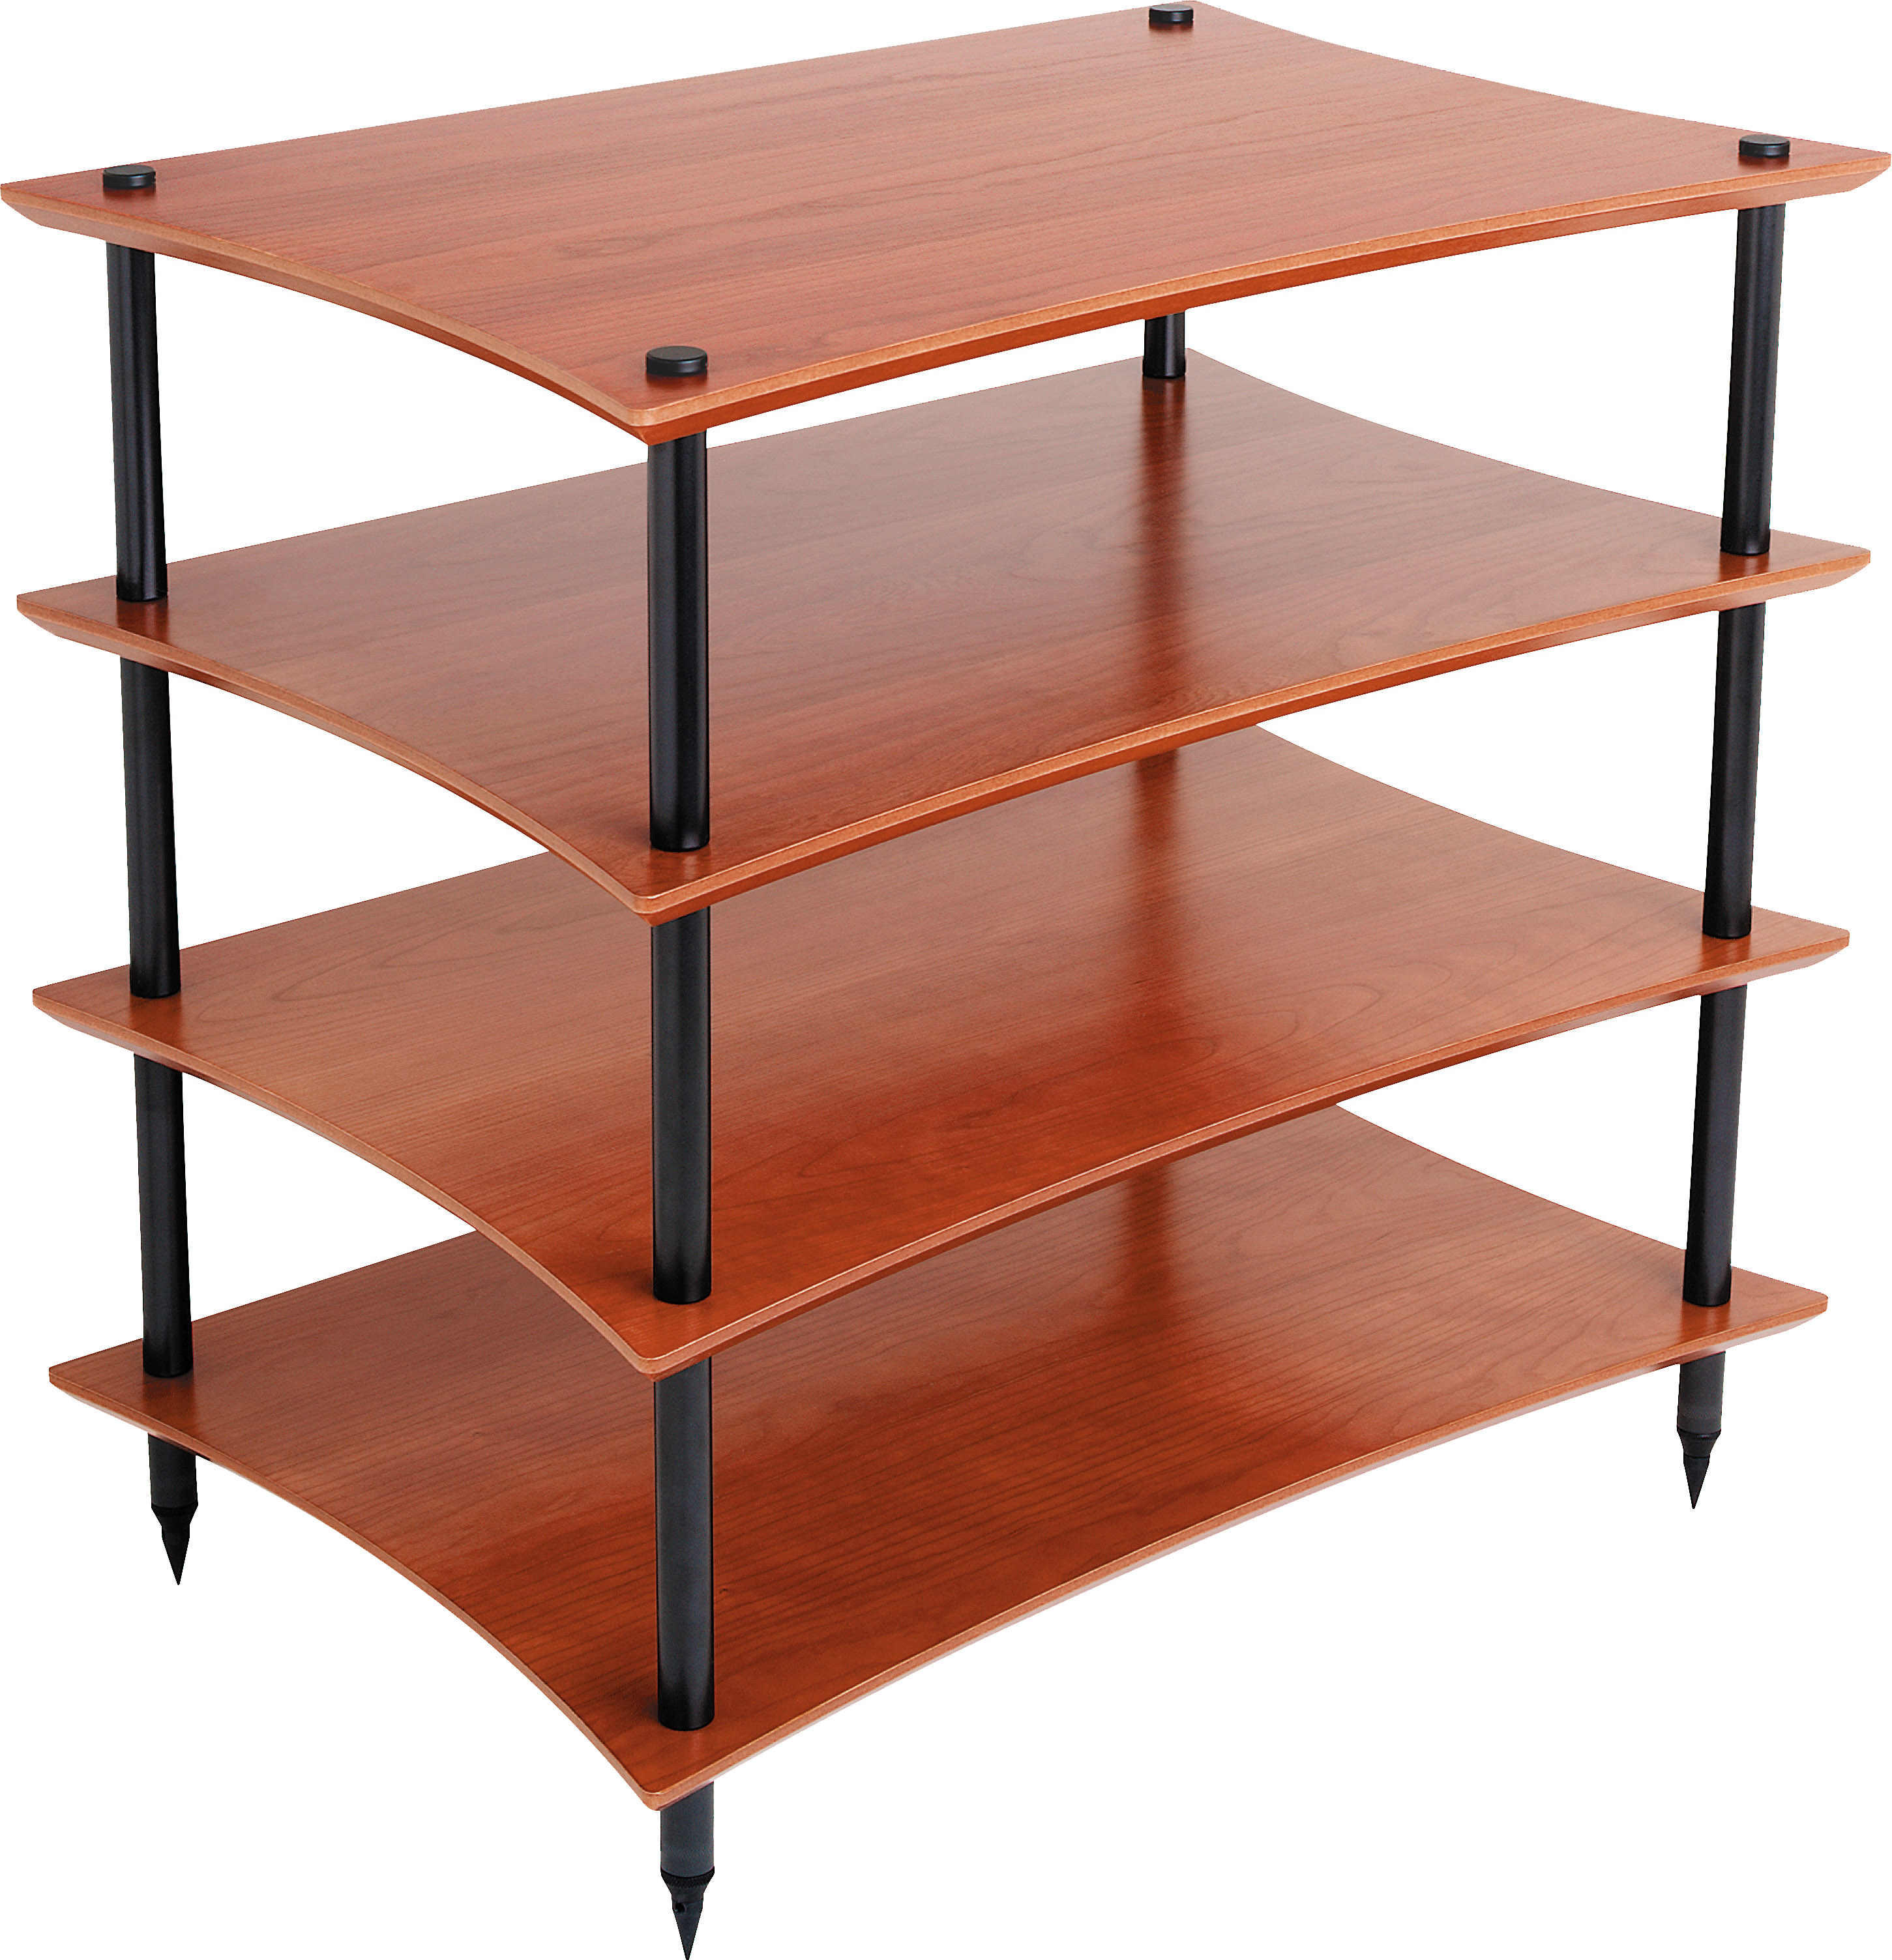 r pipe products industrial gr display rack h harbor na ann clothing lifestyle inch w br mounted shelf